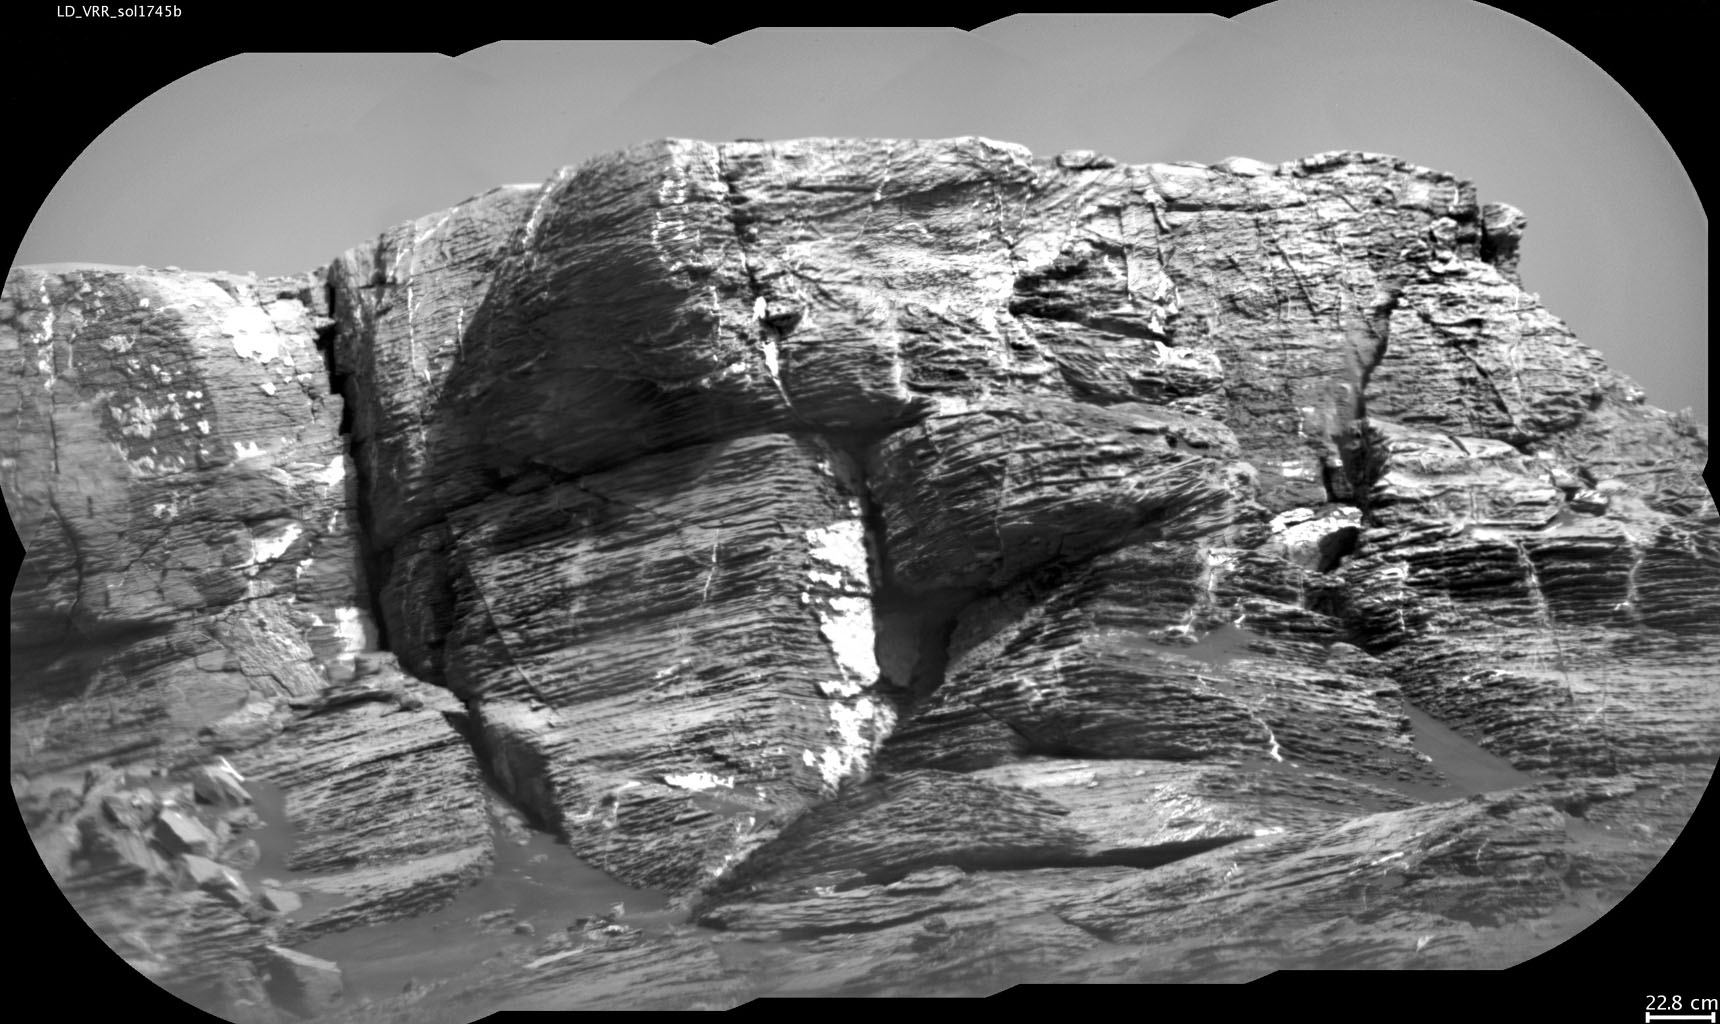 This view of 'Vera Rubin Ridge' from the ChemCam instrument on NASA's Curiosity Mars rover shows multiple sedimentary layers and fracture-filling deposits of minerals.